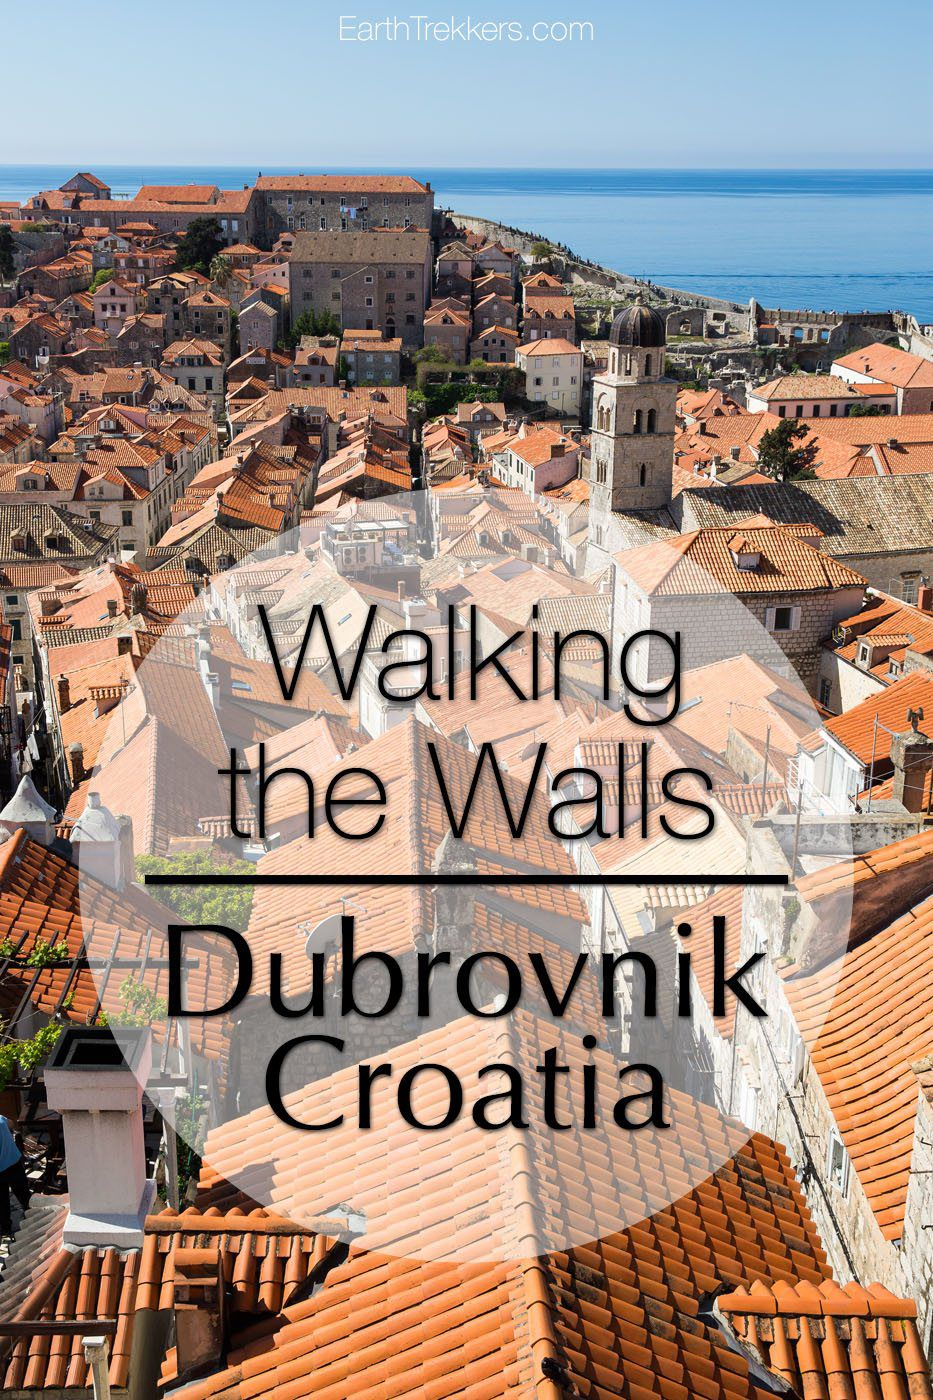 Dubrovnik Croatia Walking the Walls